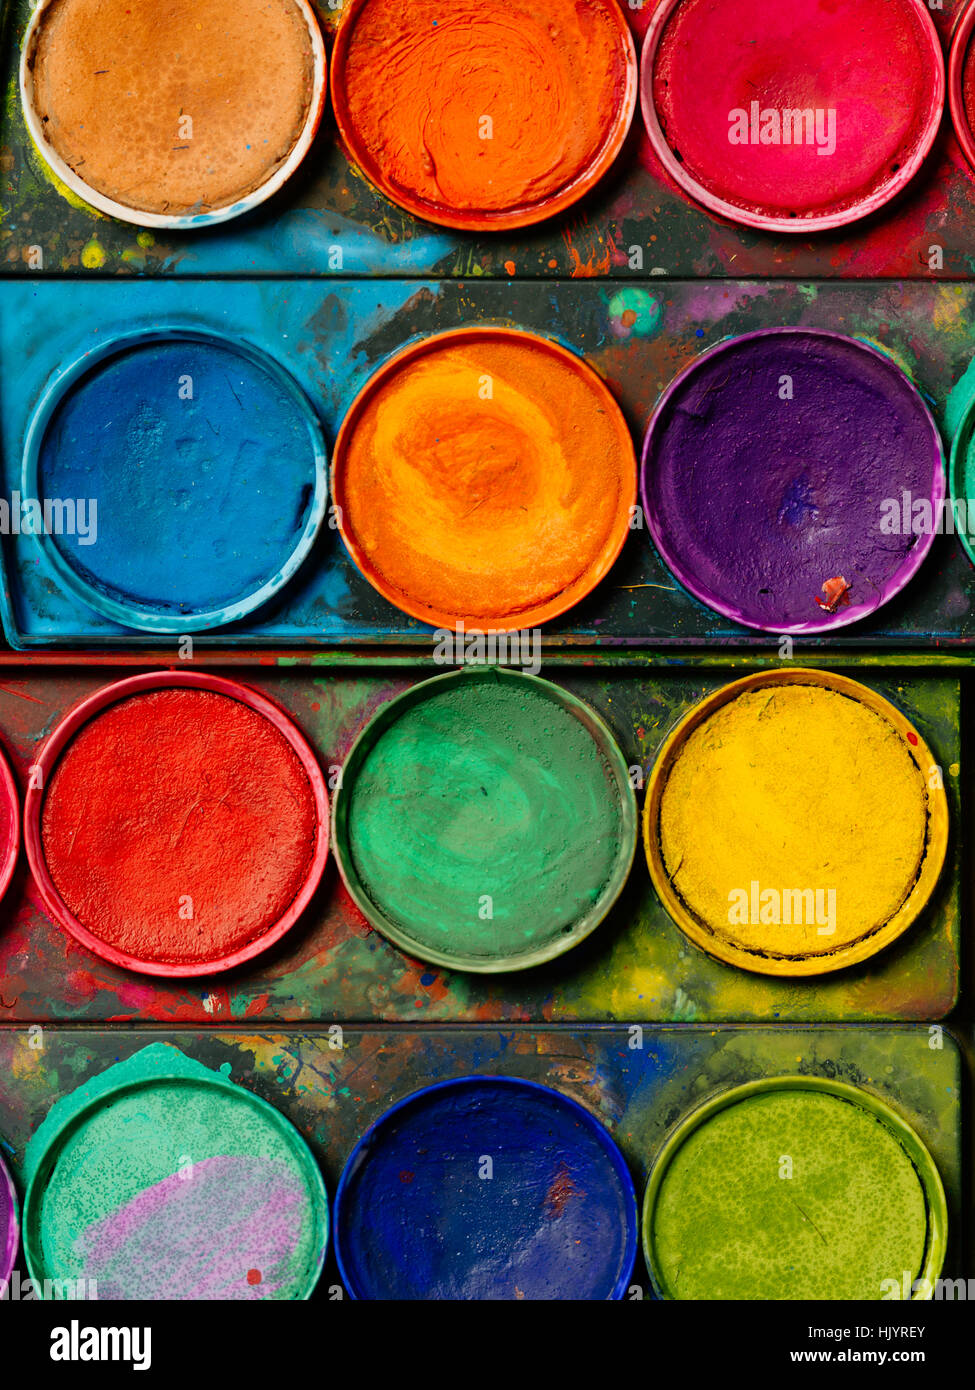 Photo of a palette of watercolor paints and well-used tray. - Stock Image